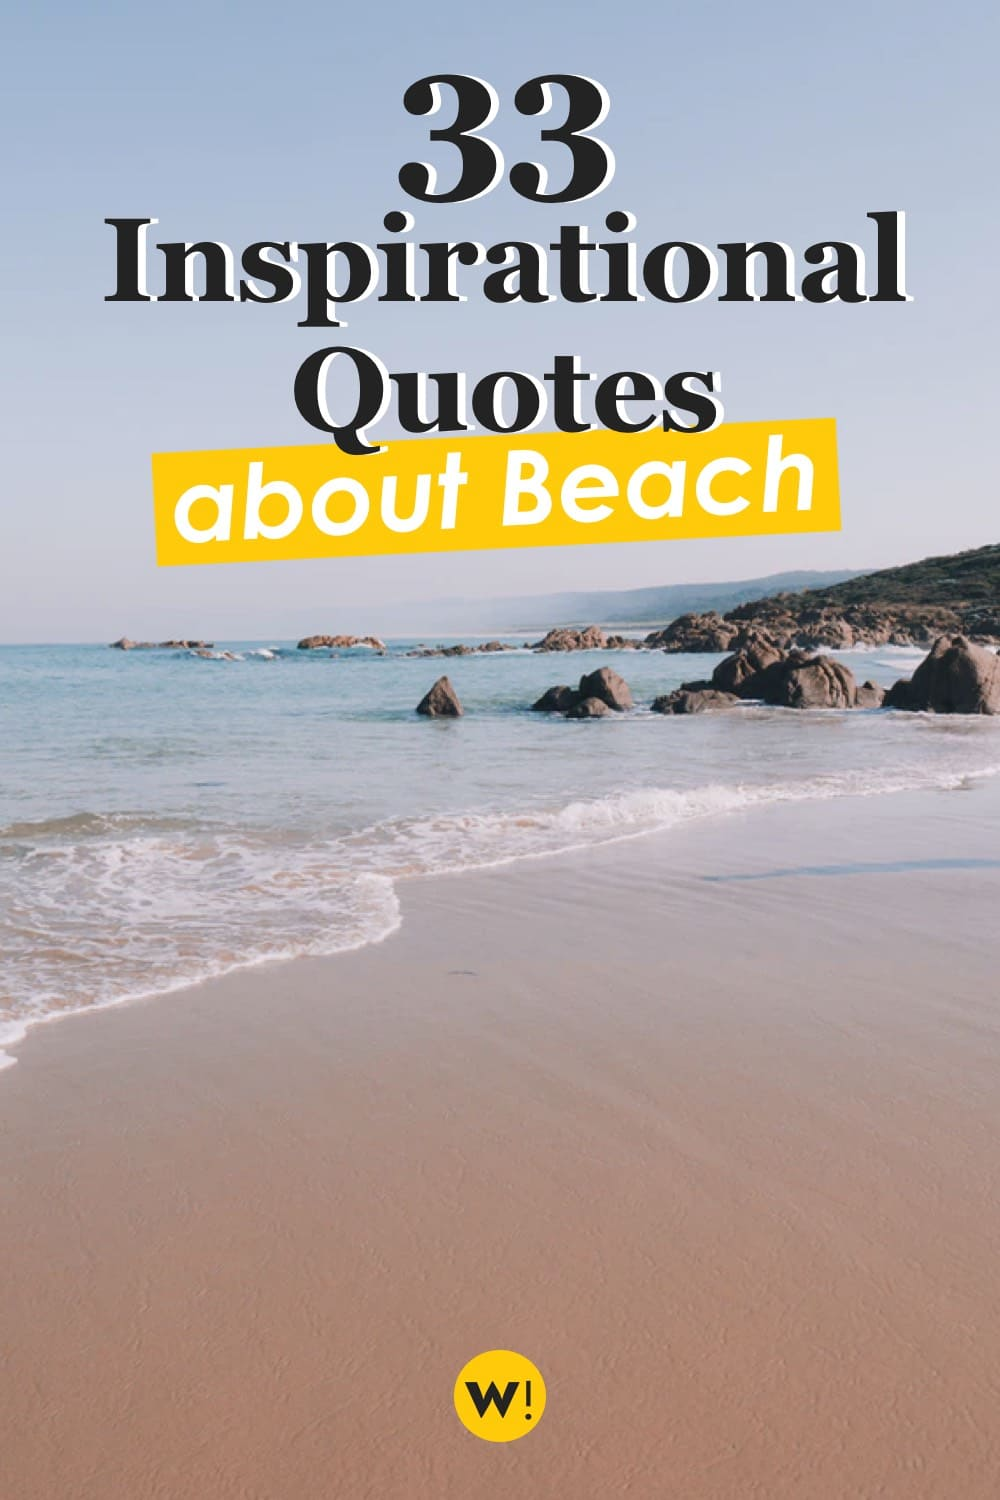 Looking for some inspiration, related to the beach? Or maybe a good dose of motivation? These 33 inspirational beach quotes will be perfect for you! beach quotes inspirational | beach quotes and sayings inspiration |ocean quotes beach |ocean quotes instagram caption | sea quotes inspirational | ocean quotes inspirational